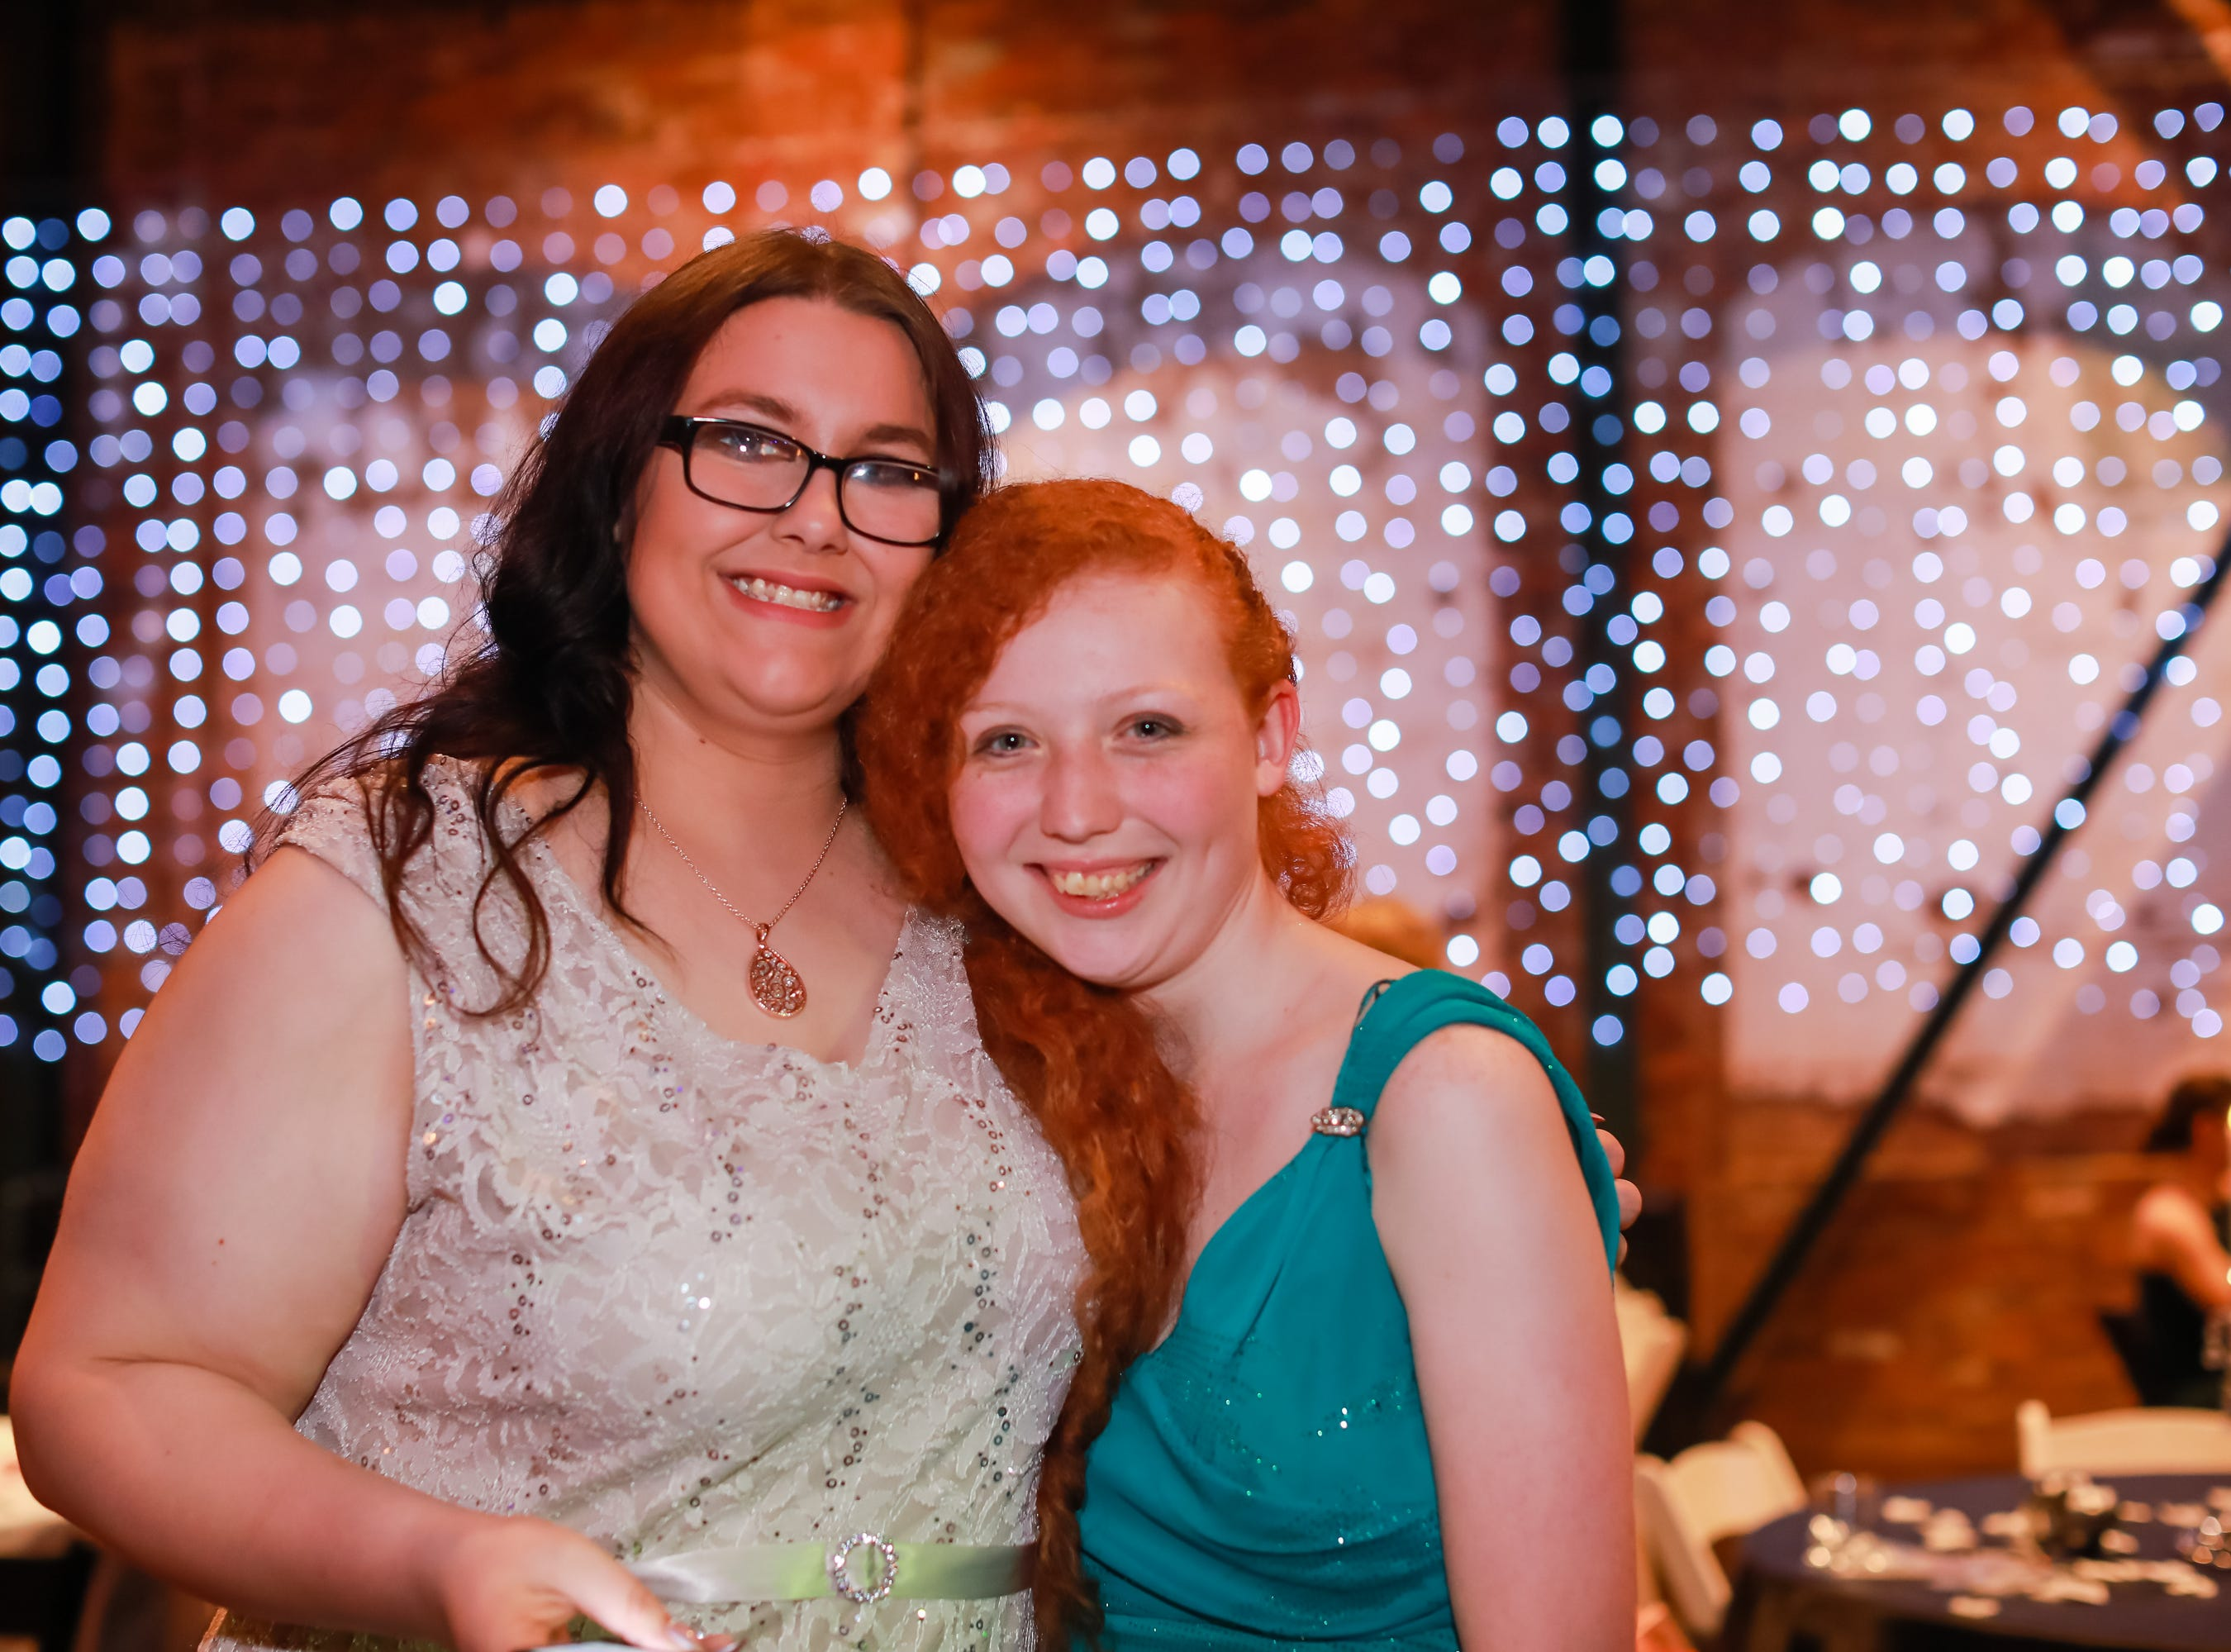 Wren High School students enjoyed their prom at Bleckley Station in downtown Anderson Saturday, April 6, 2019.